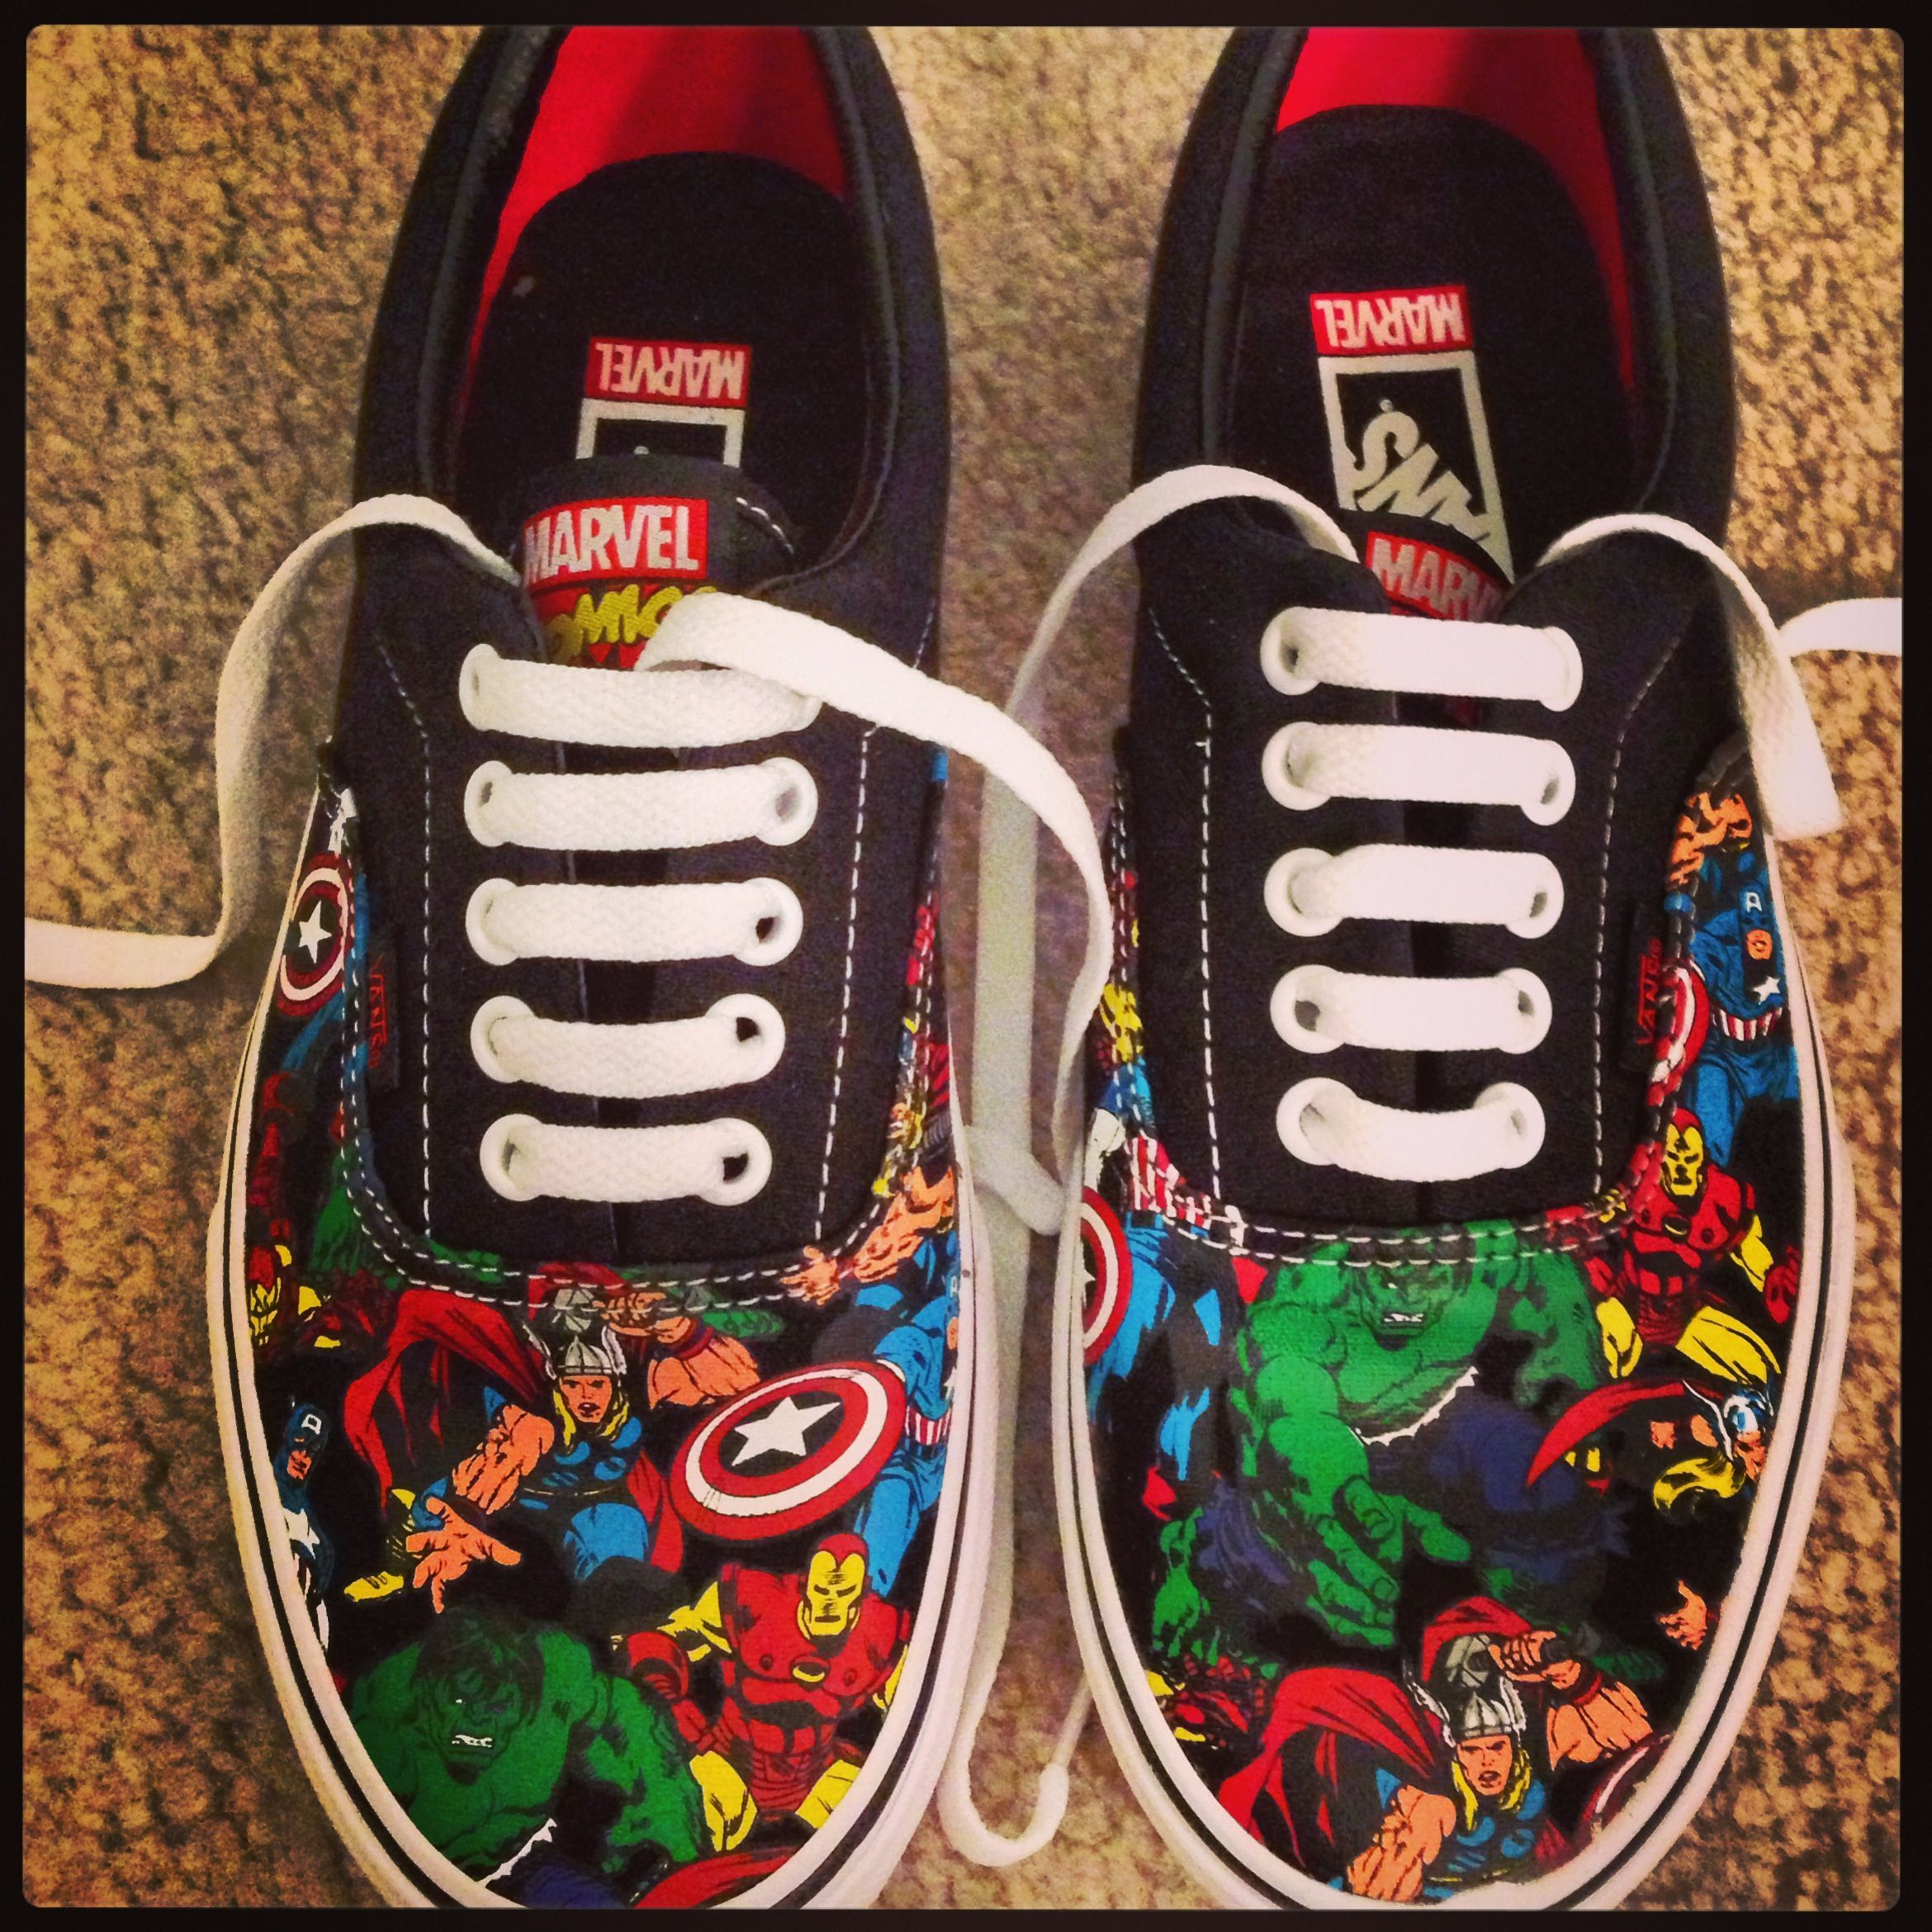 Avengers shoes by vans. for the marvel freak in all of us ...